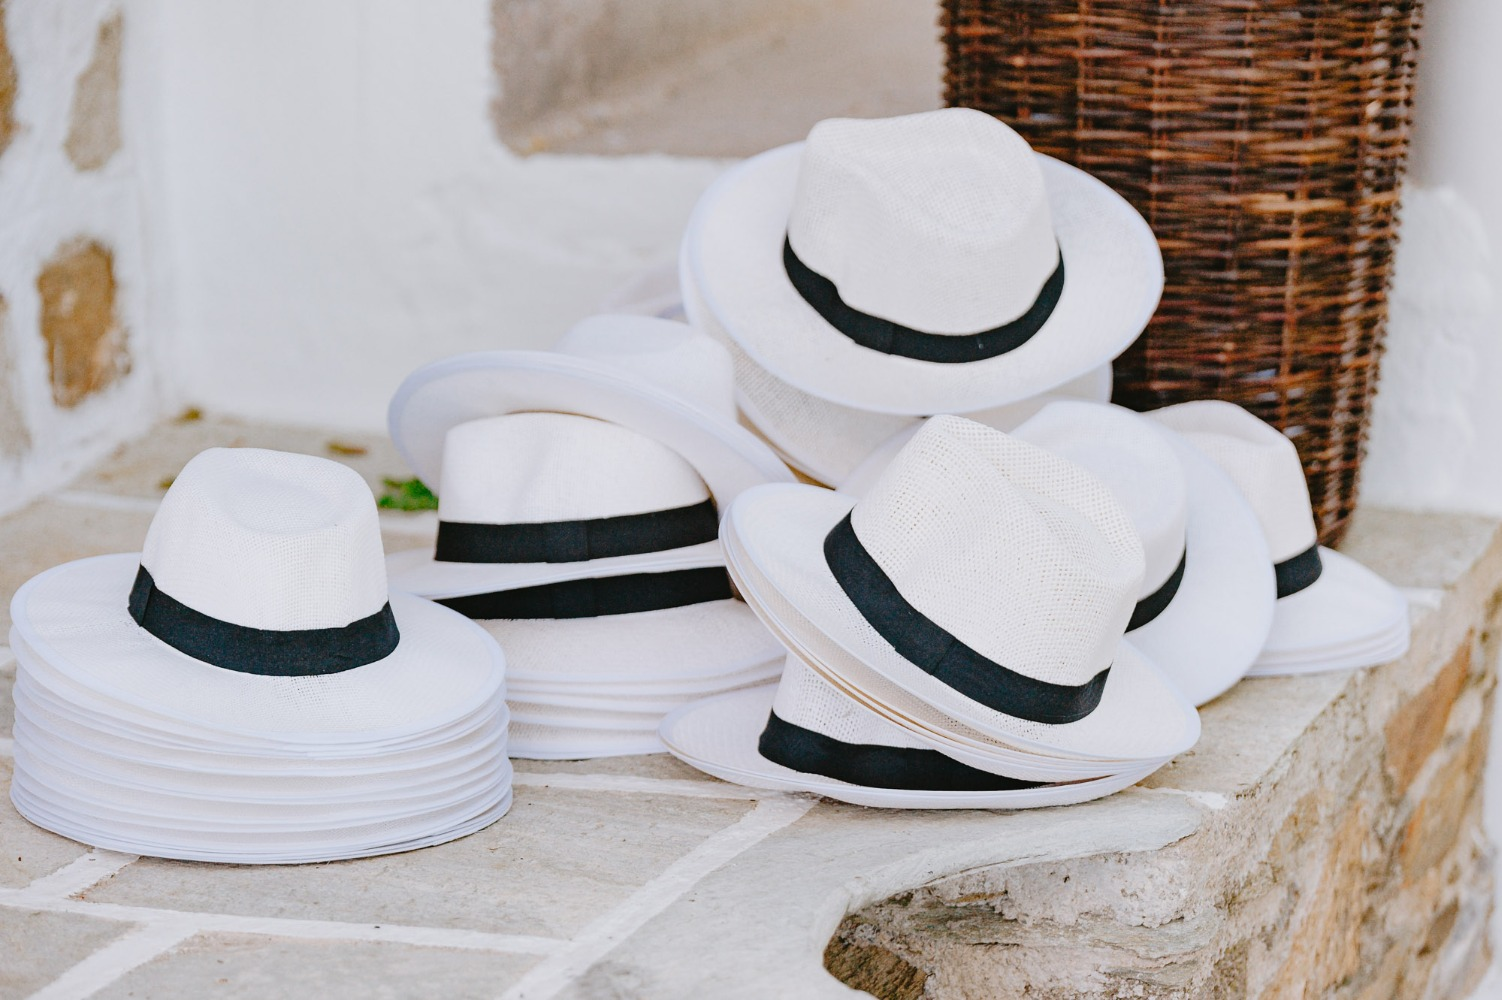 Fedora hats for wedding guests